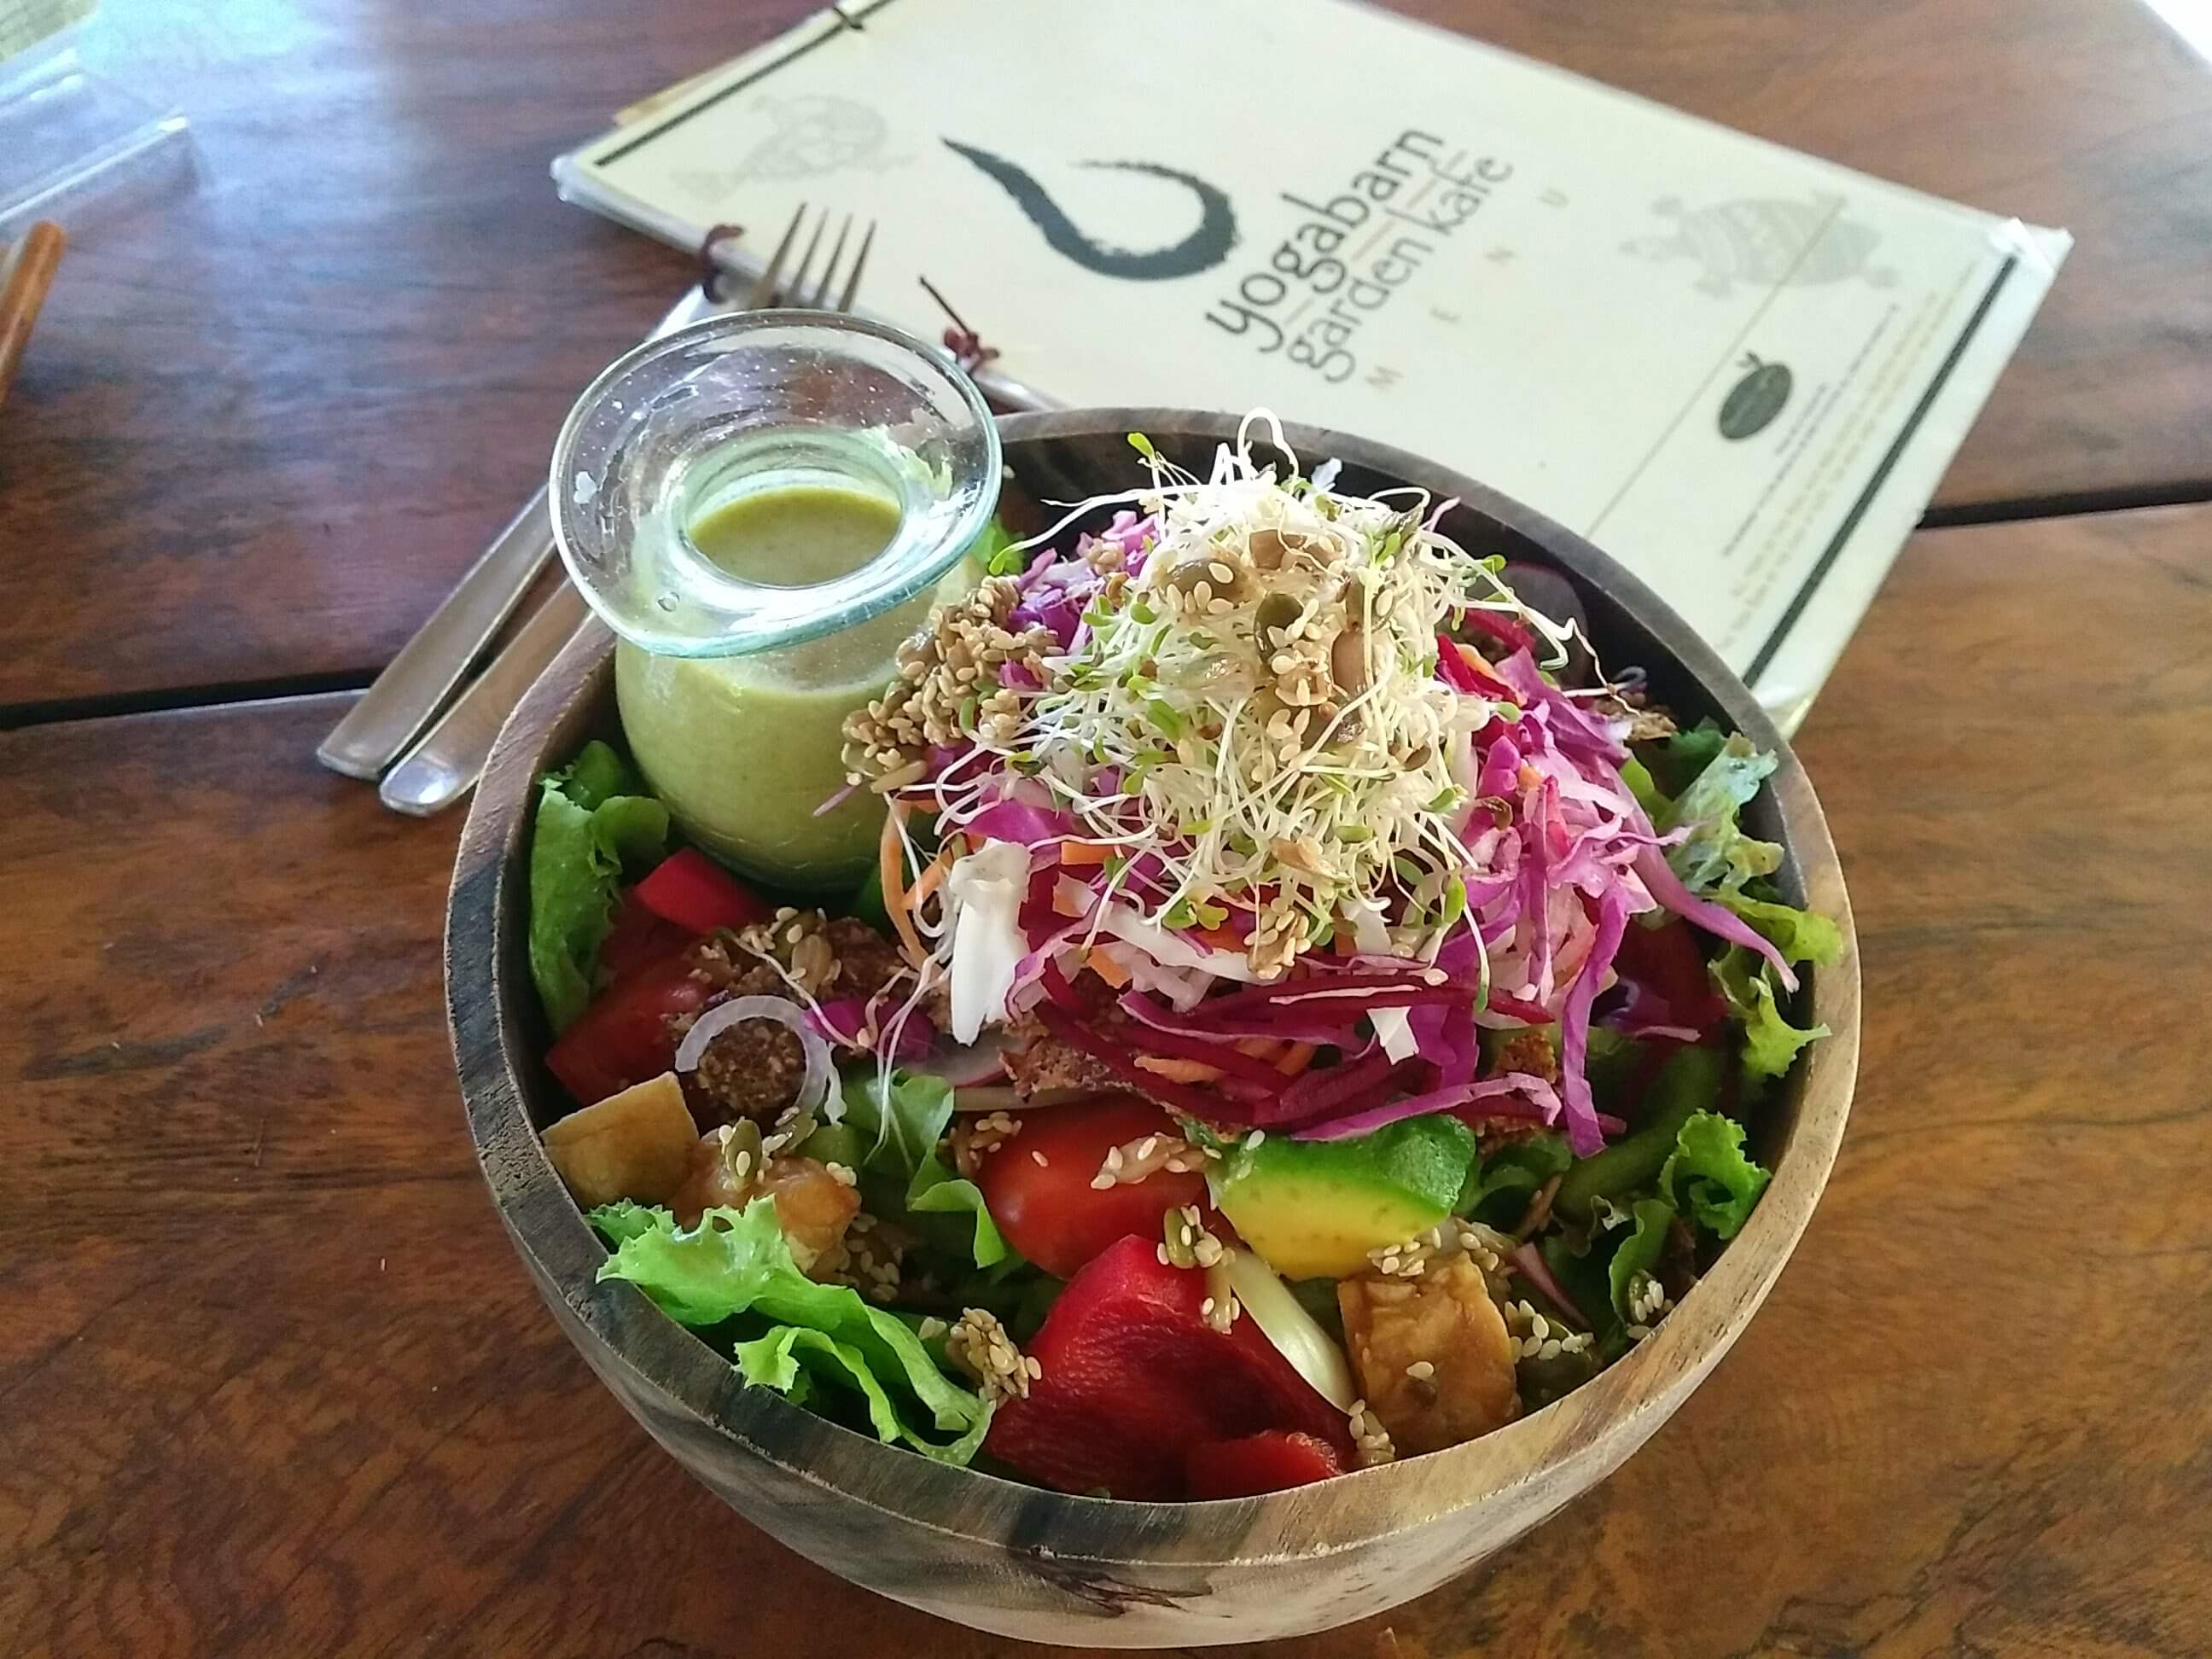 healthy food guide Bali, Ubud - Yogabarn Salat